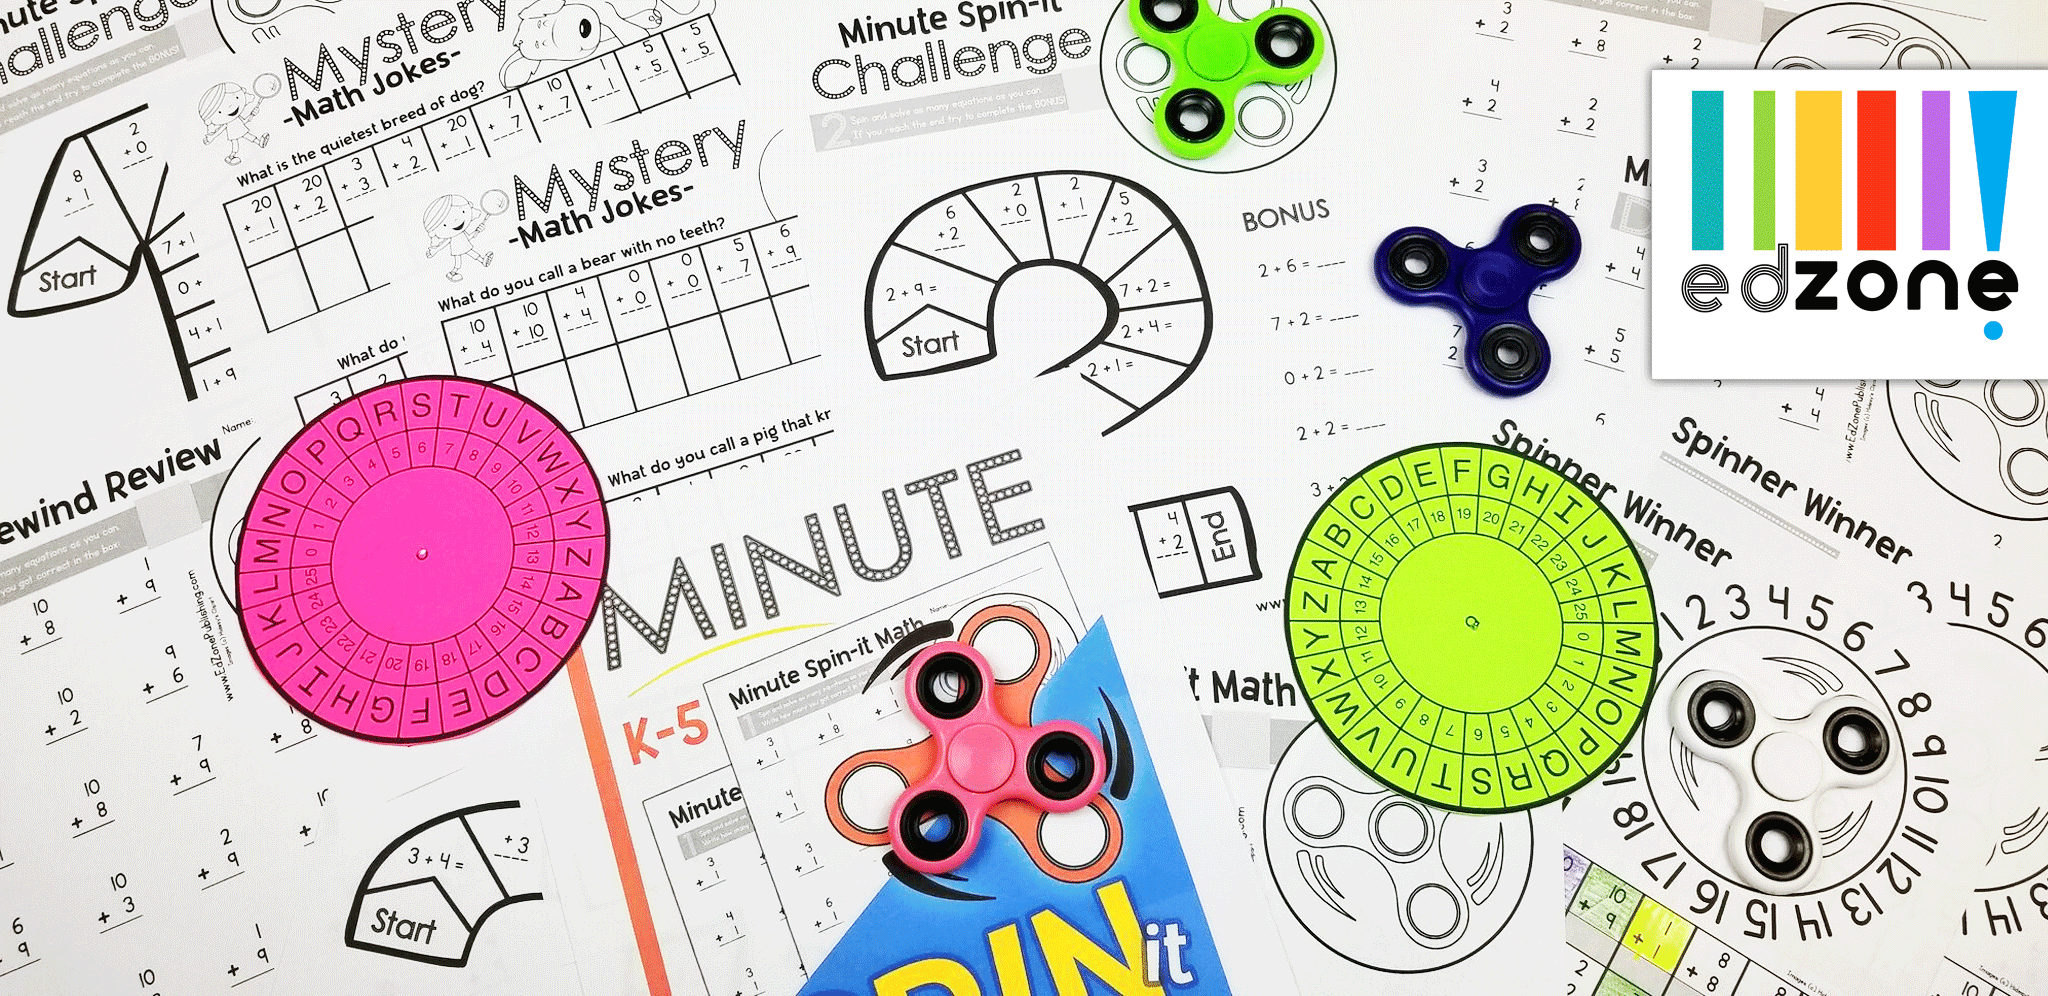 Minute Spin It Math Drills Addition